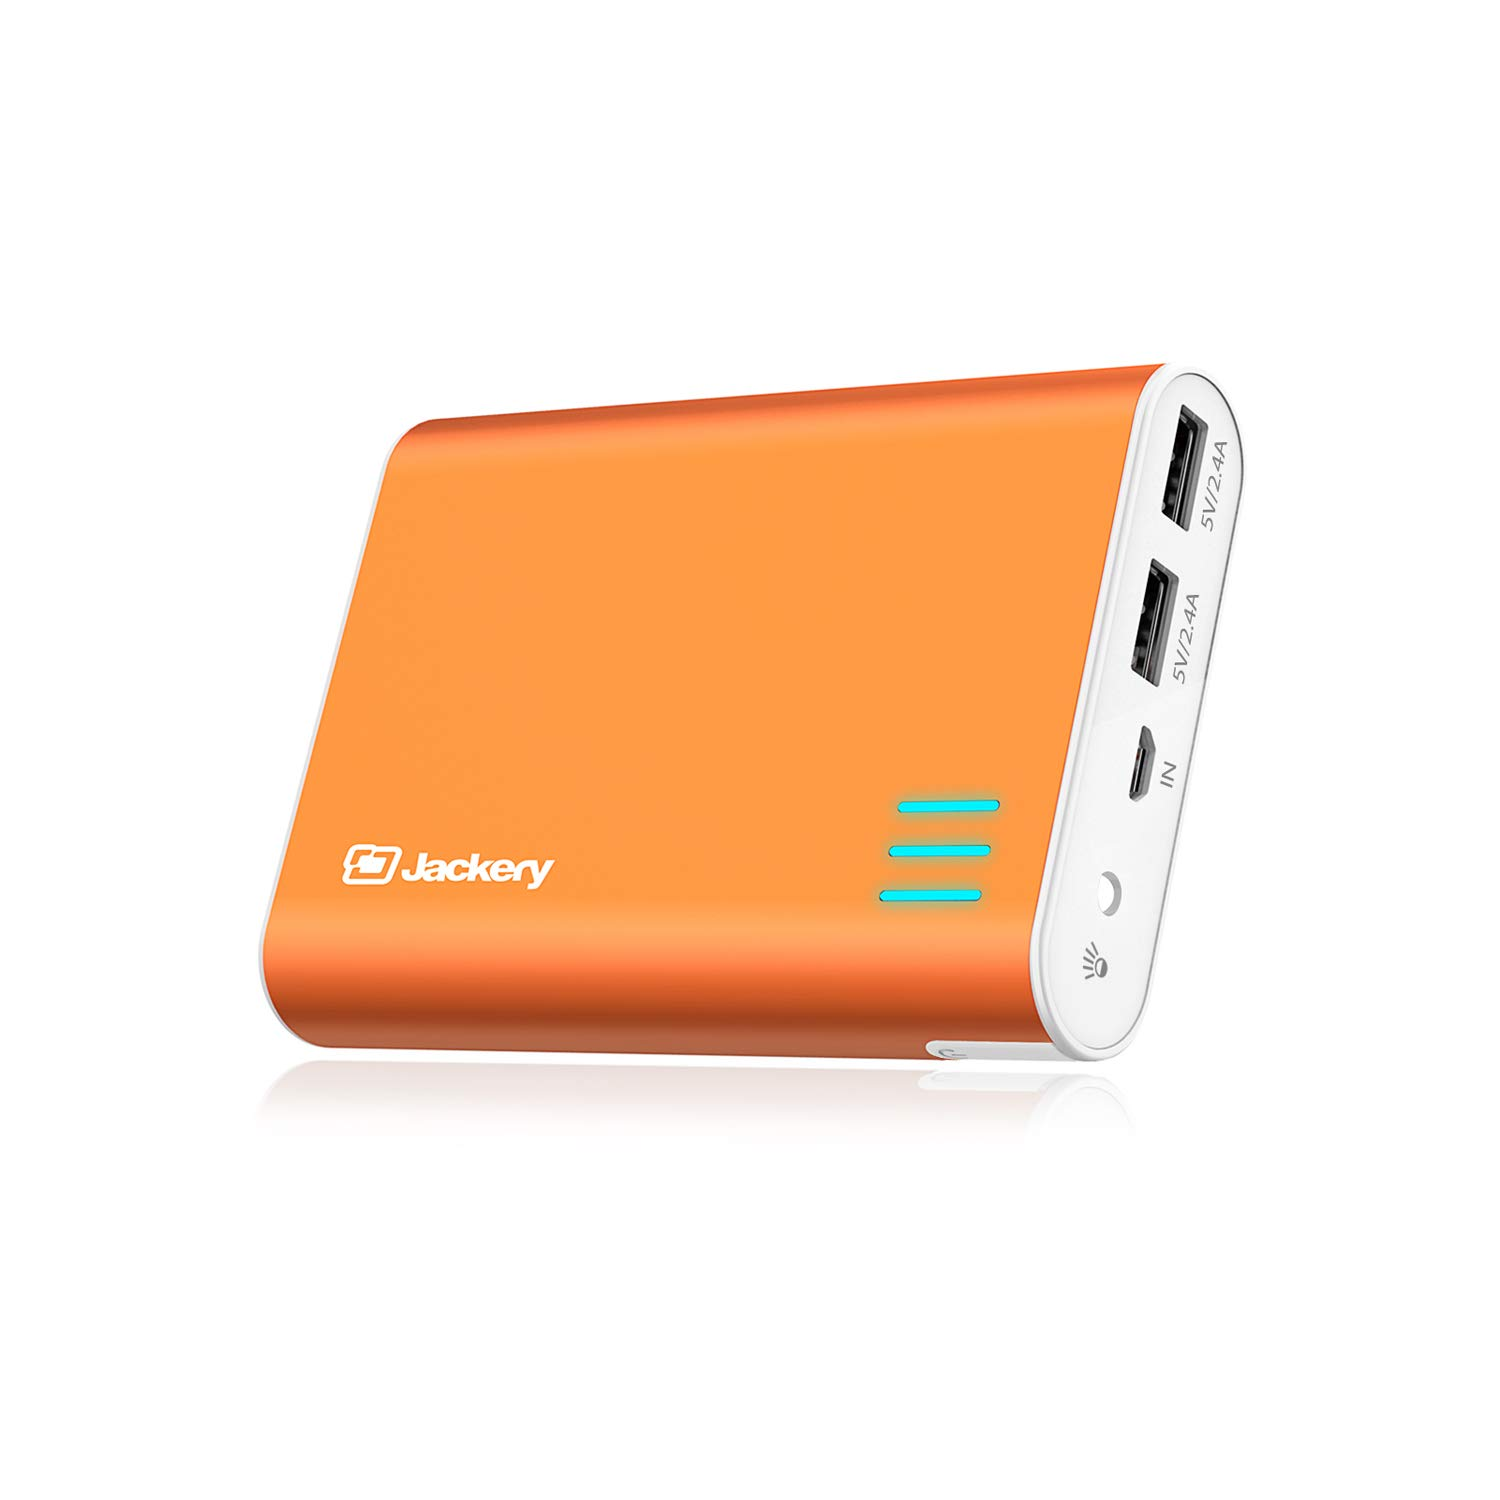 Jackery External Battery Charger Giant+ 12000mAh Power Outdoors Dual USB Portable Battery Charger/External Battery Pack/Phone Backup Power Bank with Emergency Flashlight for iPhone, Samsung-Orange by Jackery